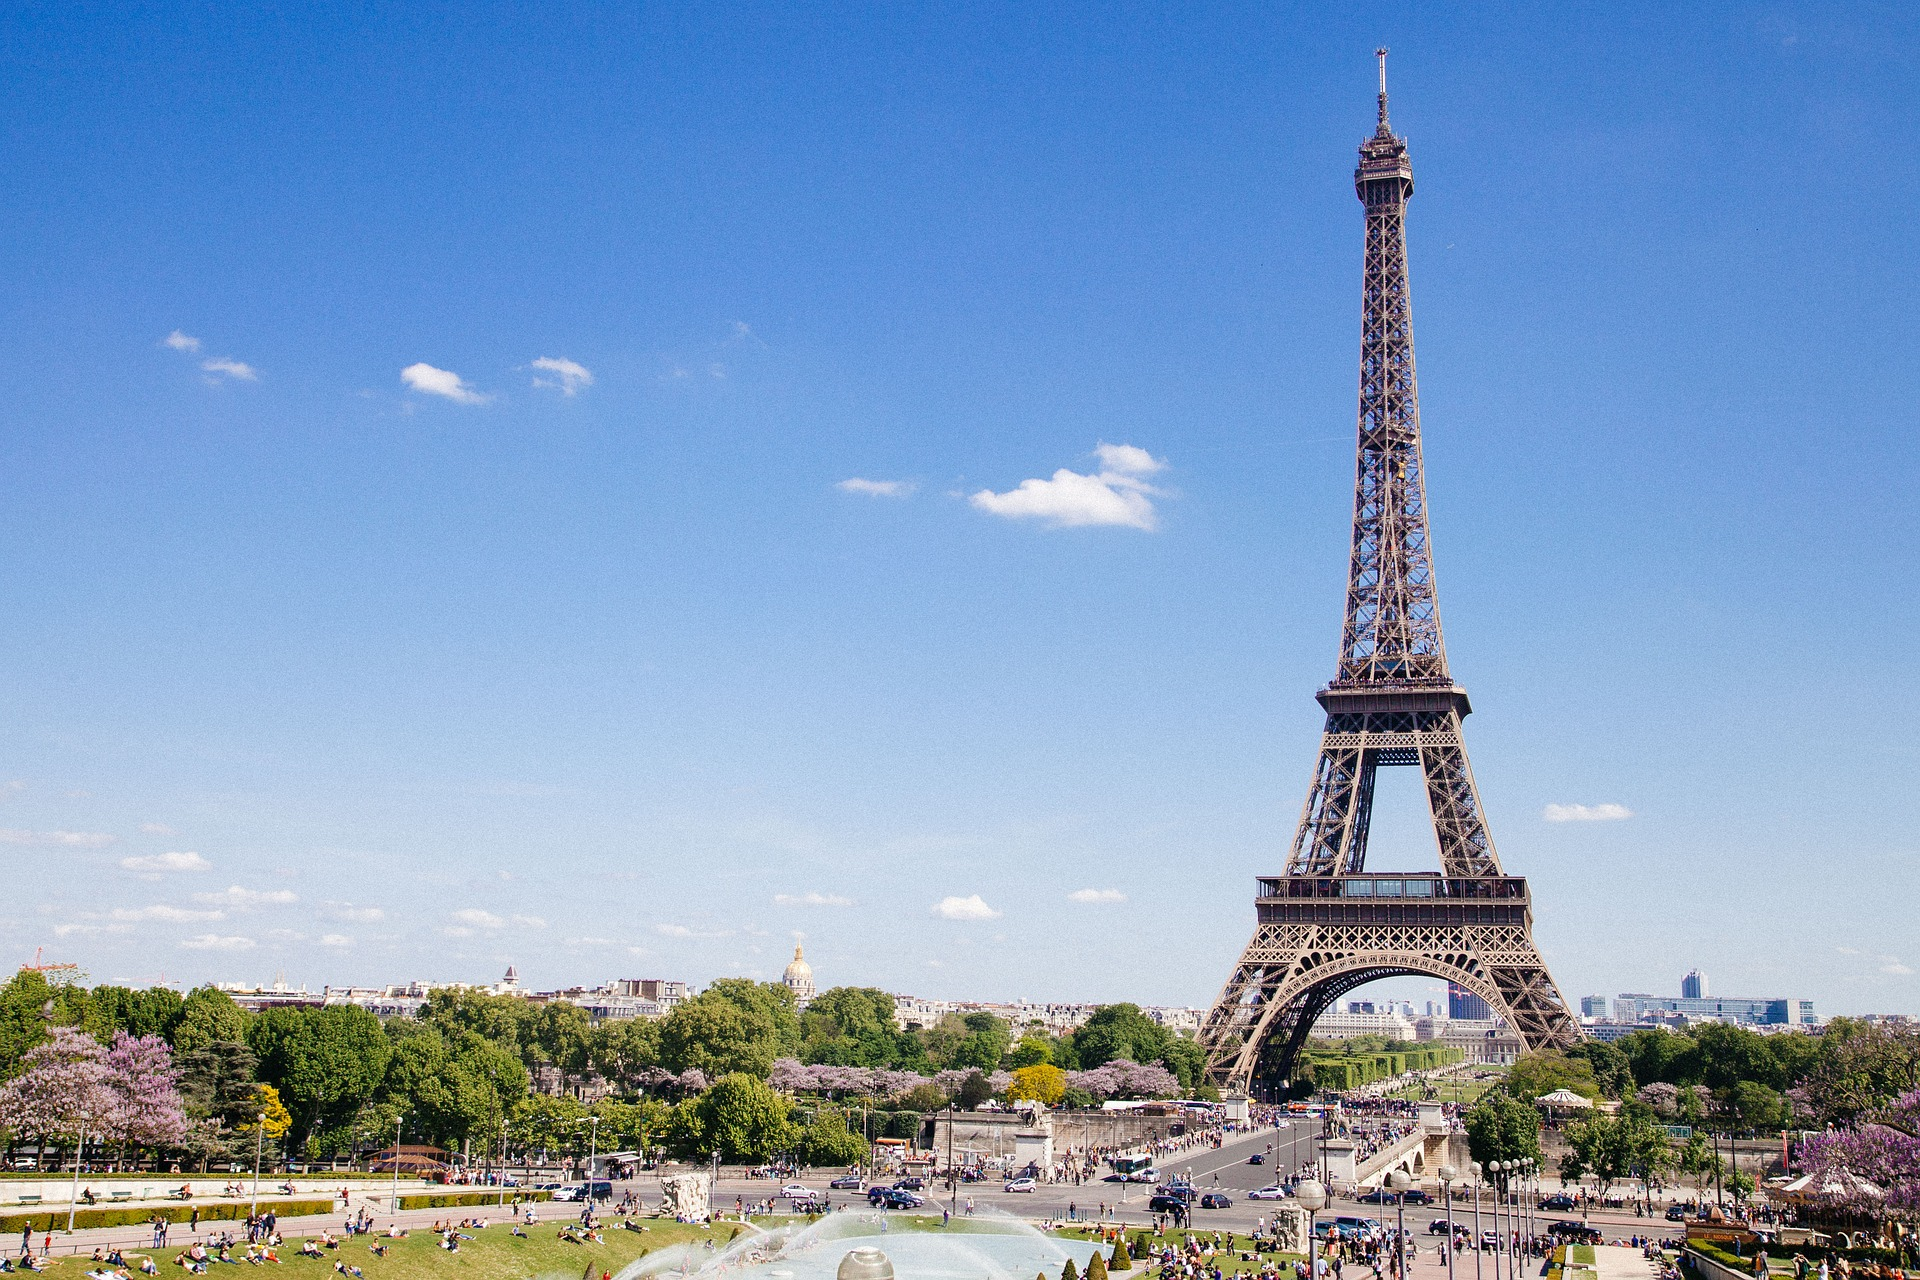 Paris fell to 26 in the Global Liveability Index 2019. Photo courtesy: Pixabay